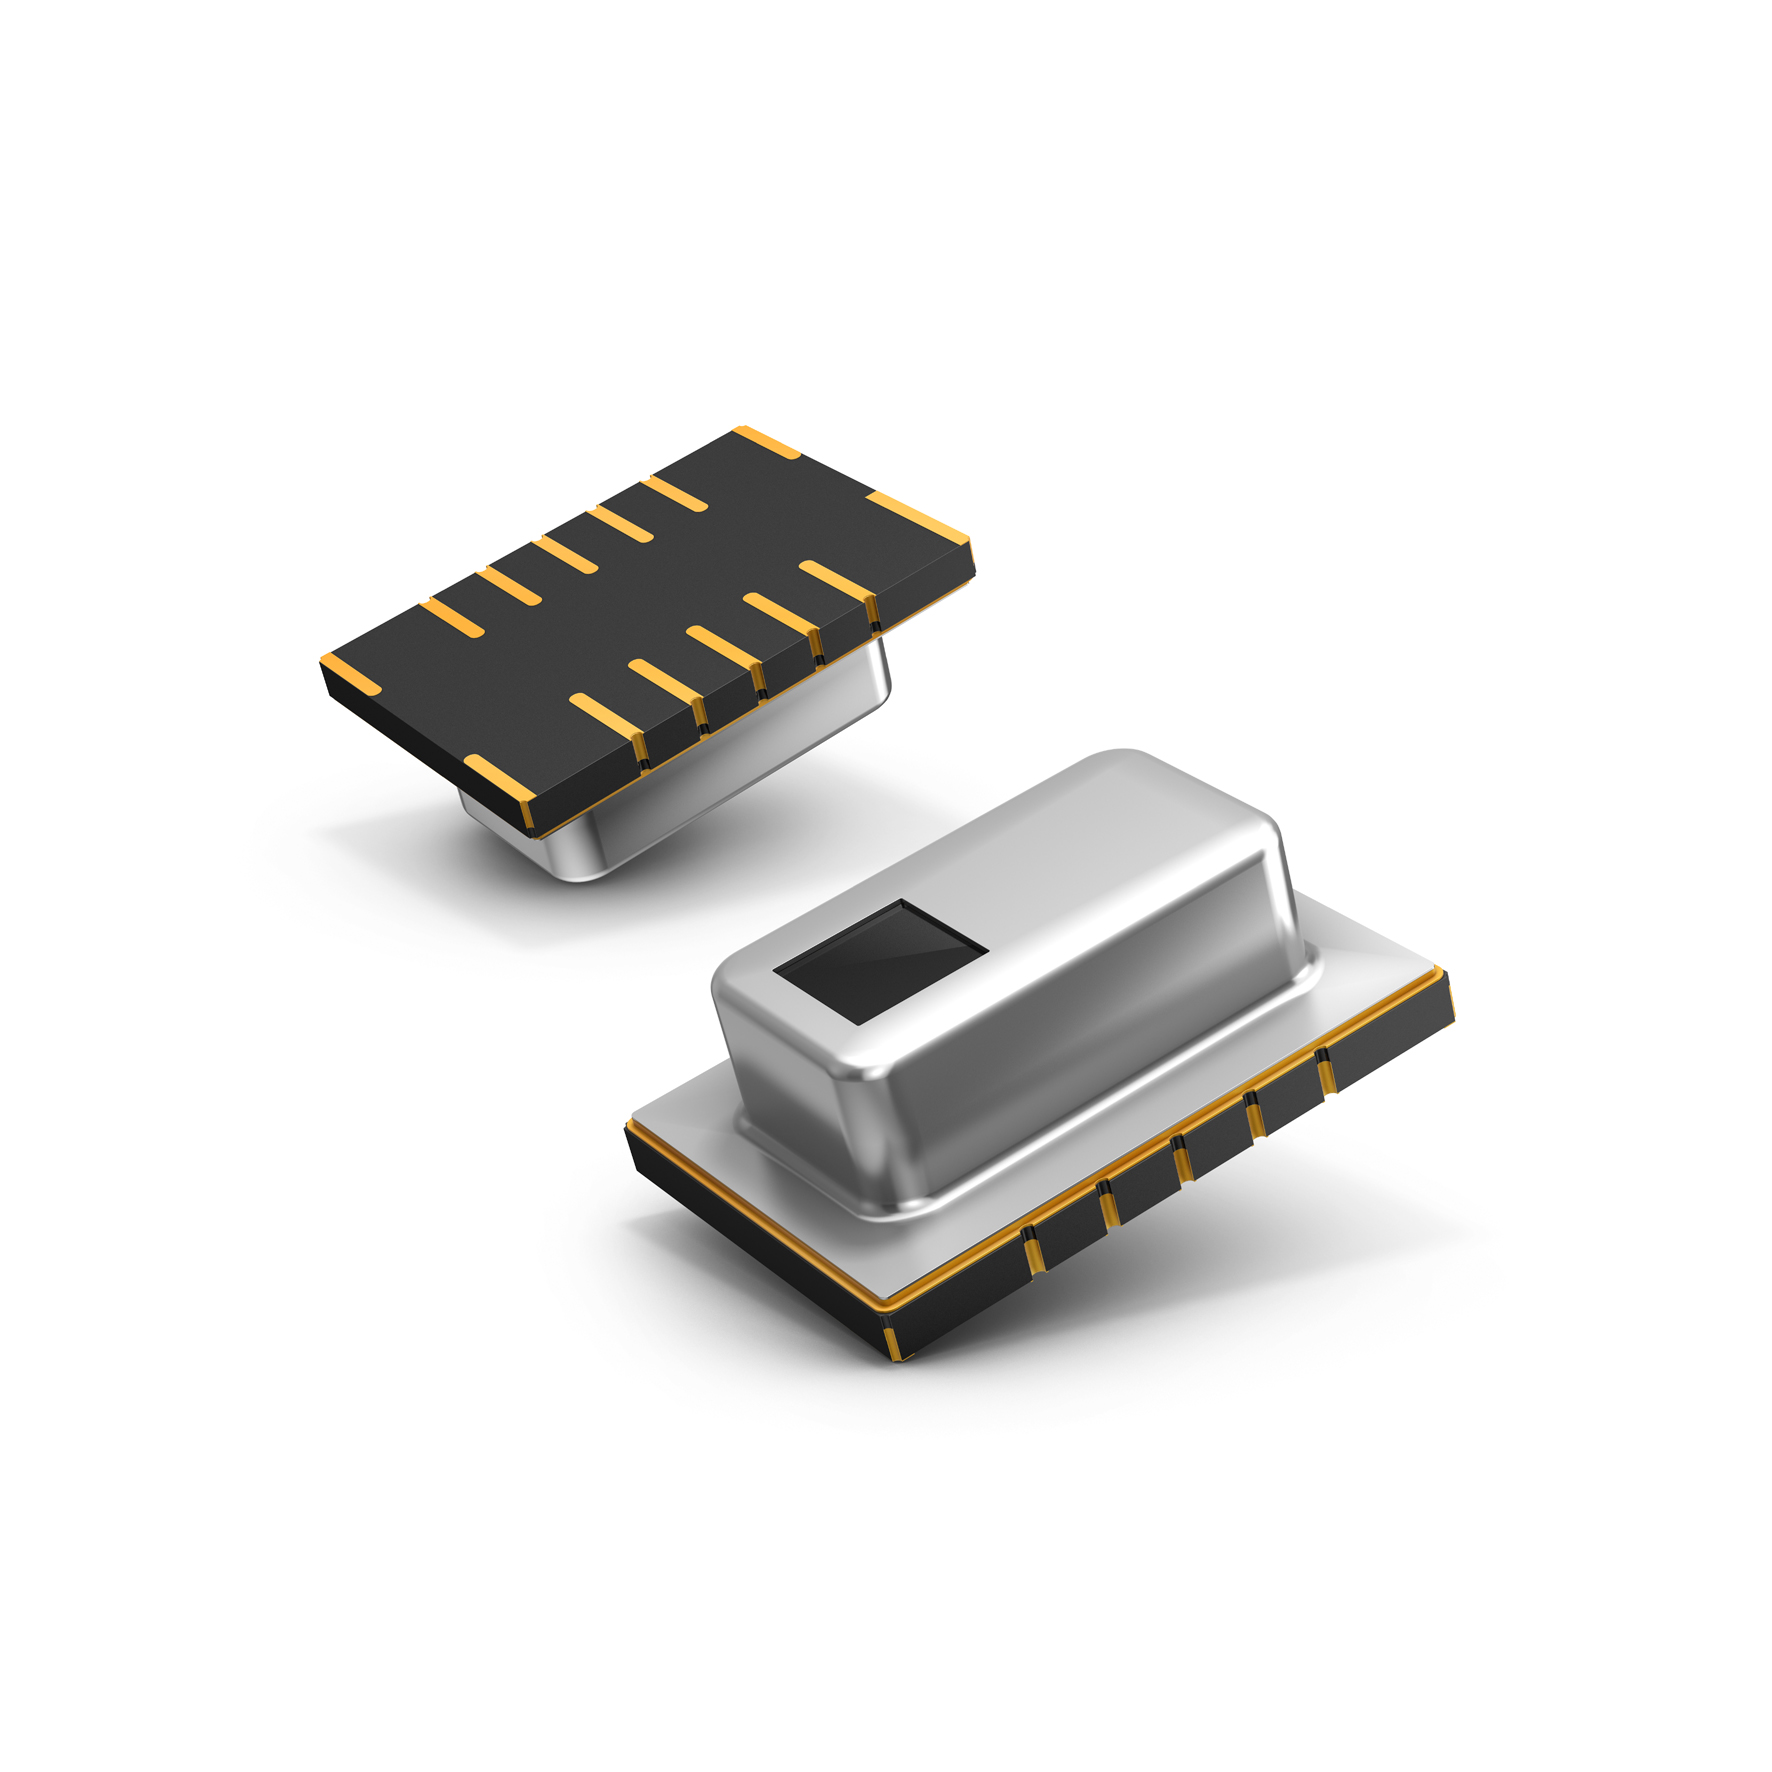 Grid EYE infrared array sensor